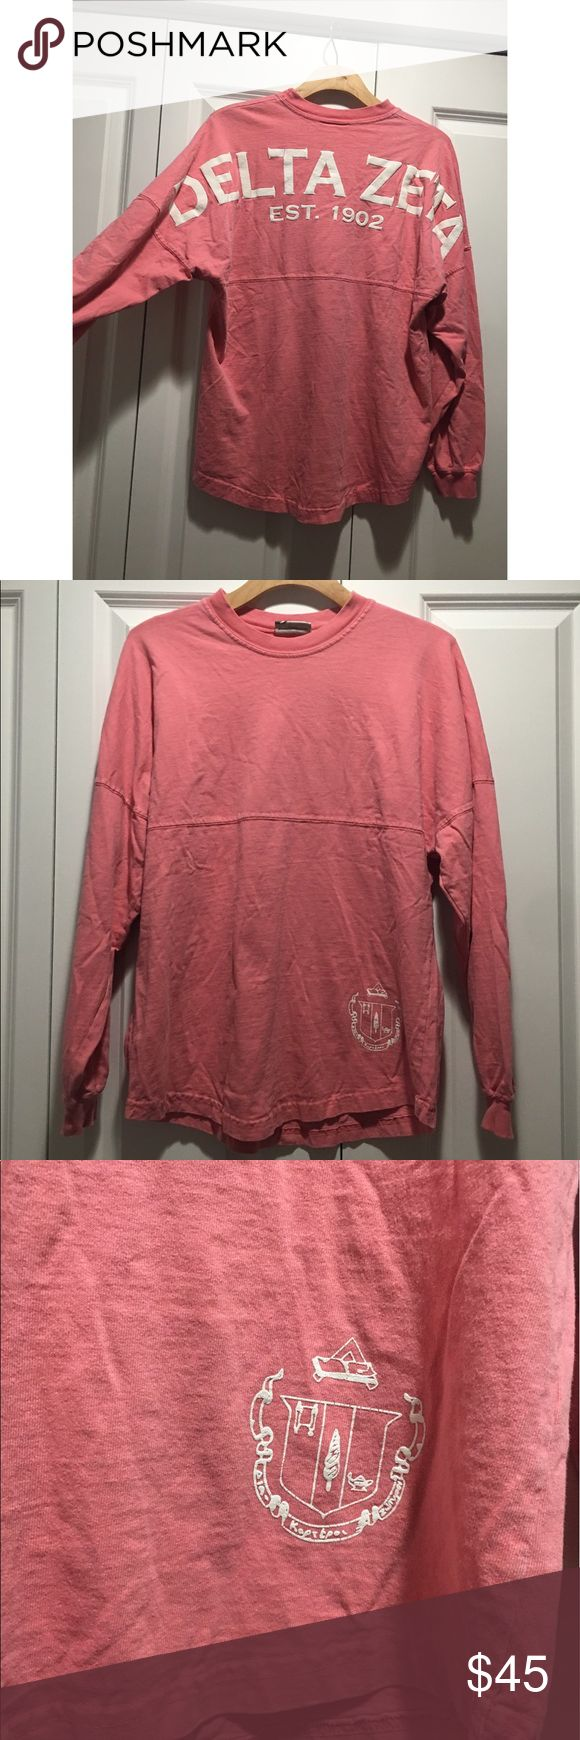 Delta Zeta sorority pink boyfriend t Shirt Top ✨(❁´◡`❁) ωḙℓḉ✺Պḙ (❁´◡`❁)✨    🦋Description:    •super cute Delta Zeta sorority sister Long Sleeve top.    ✨    🦋Brand: N/A     🦋Size: Small (fits like a Boyfriend style)    🦋Condition: Good preowned shape. Has some cracking in the lettering due to dryer.    (please refer to all photos Don't hesitate to ask ANY and ALL question before Bidding/Buying)    Ask about combined shipping and discounts! Tops